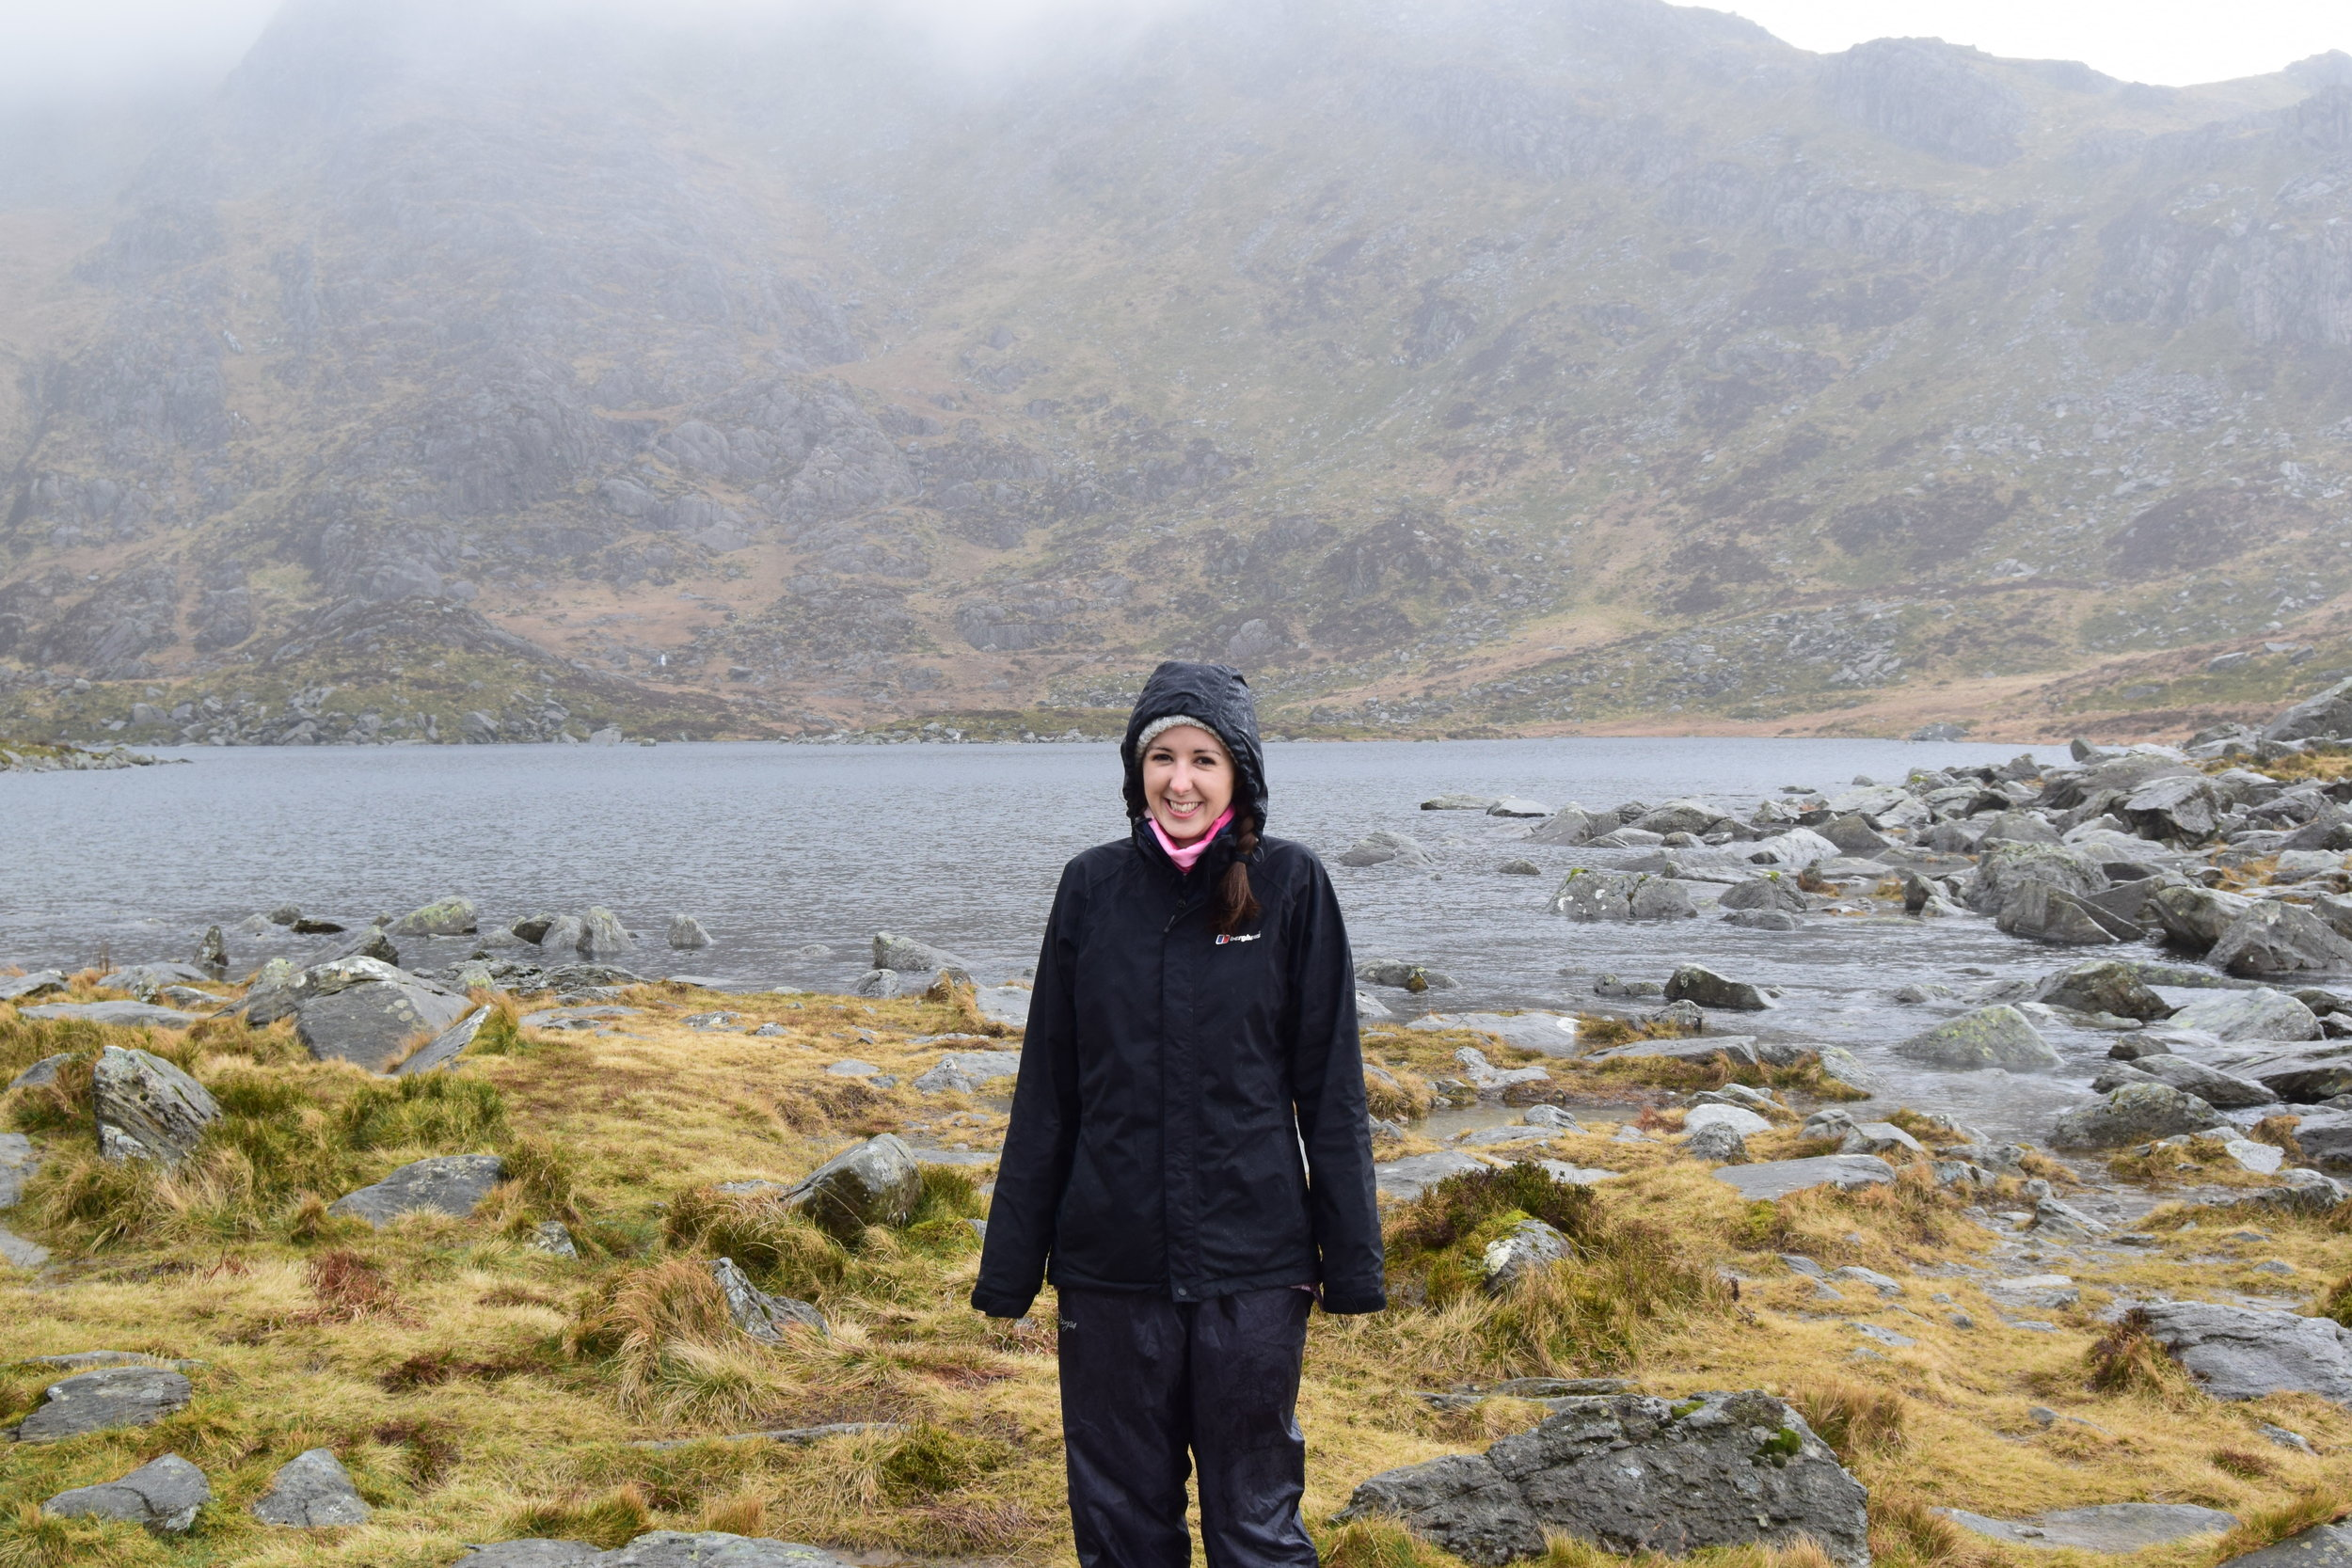 Just after this was taken, I slipped and fell in the lake!